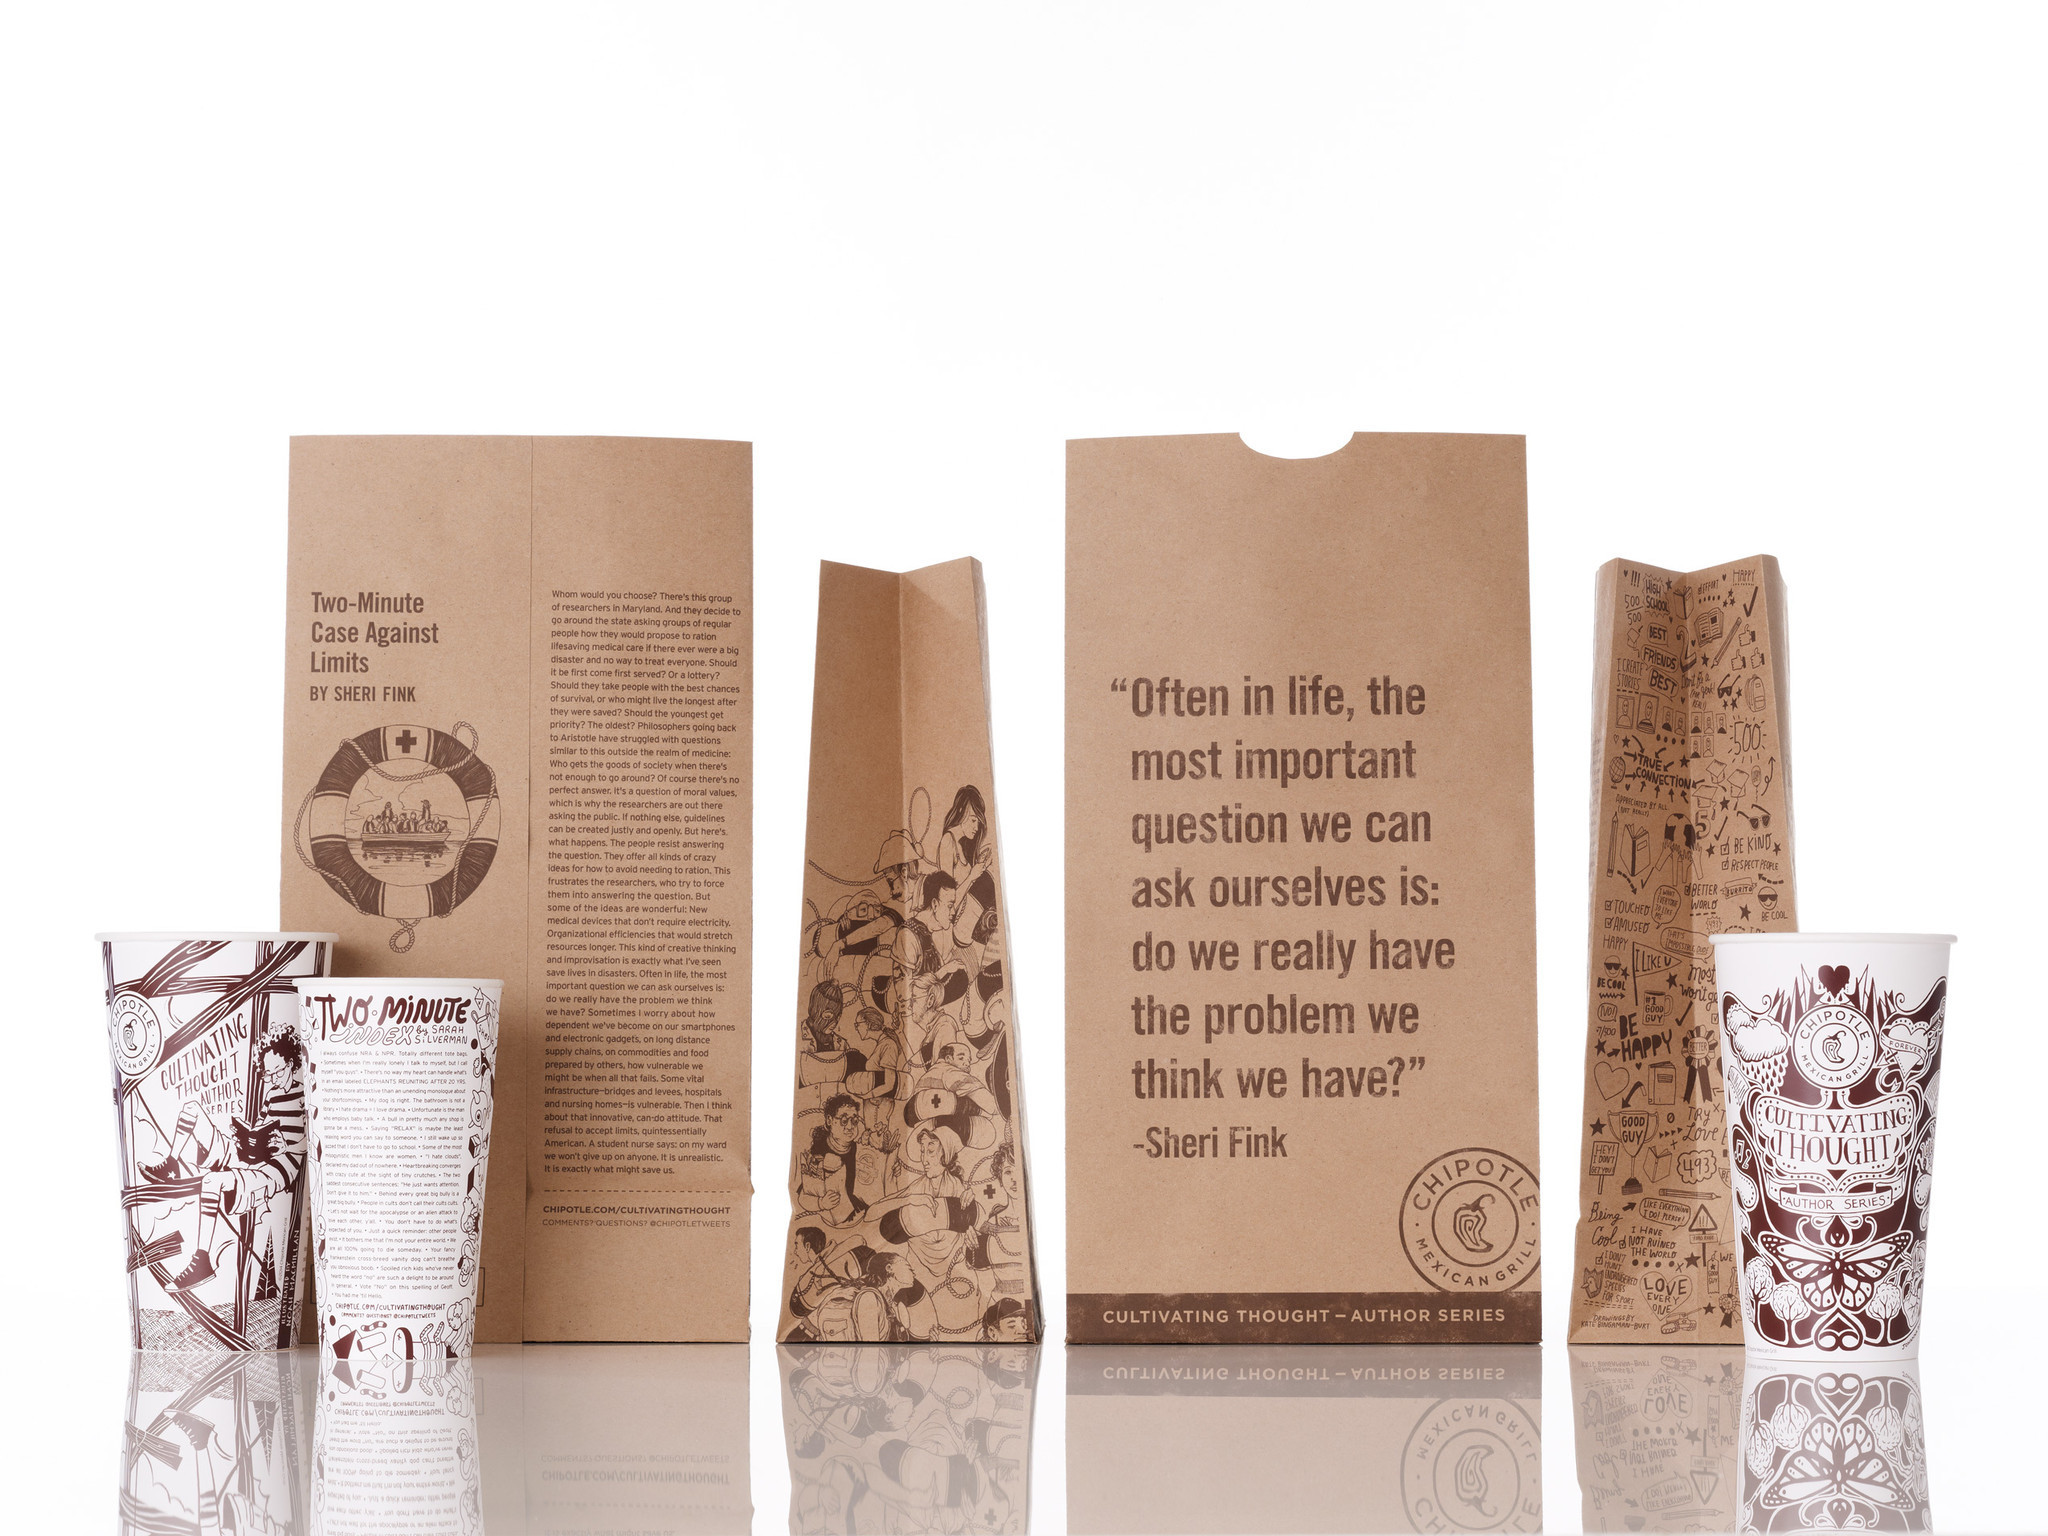 chipotle launches essay contest for cups and k college chipotle launches essay contest for cups and 20k college scholarships la times